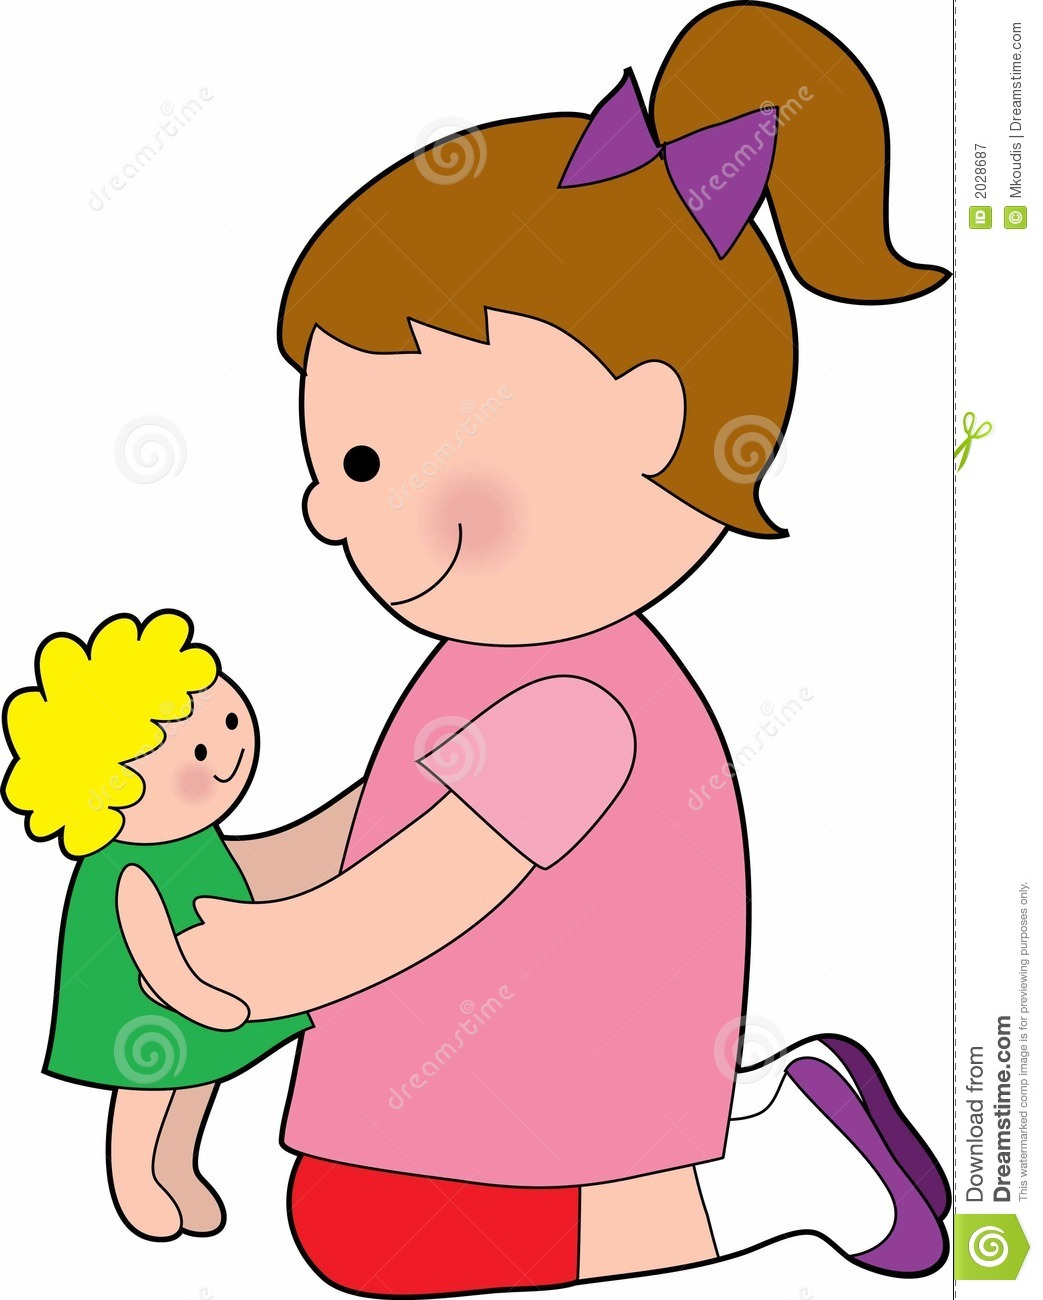 Playing with dolls clip art.